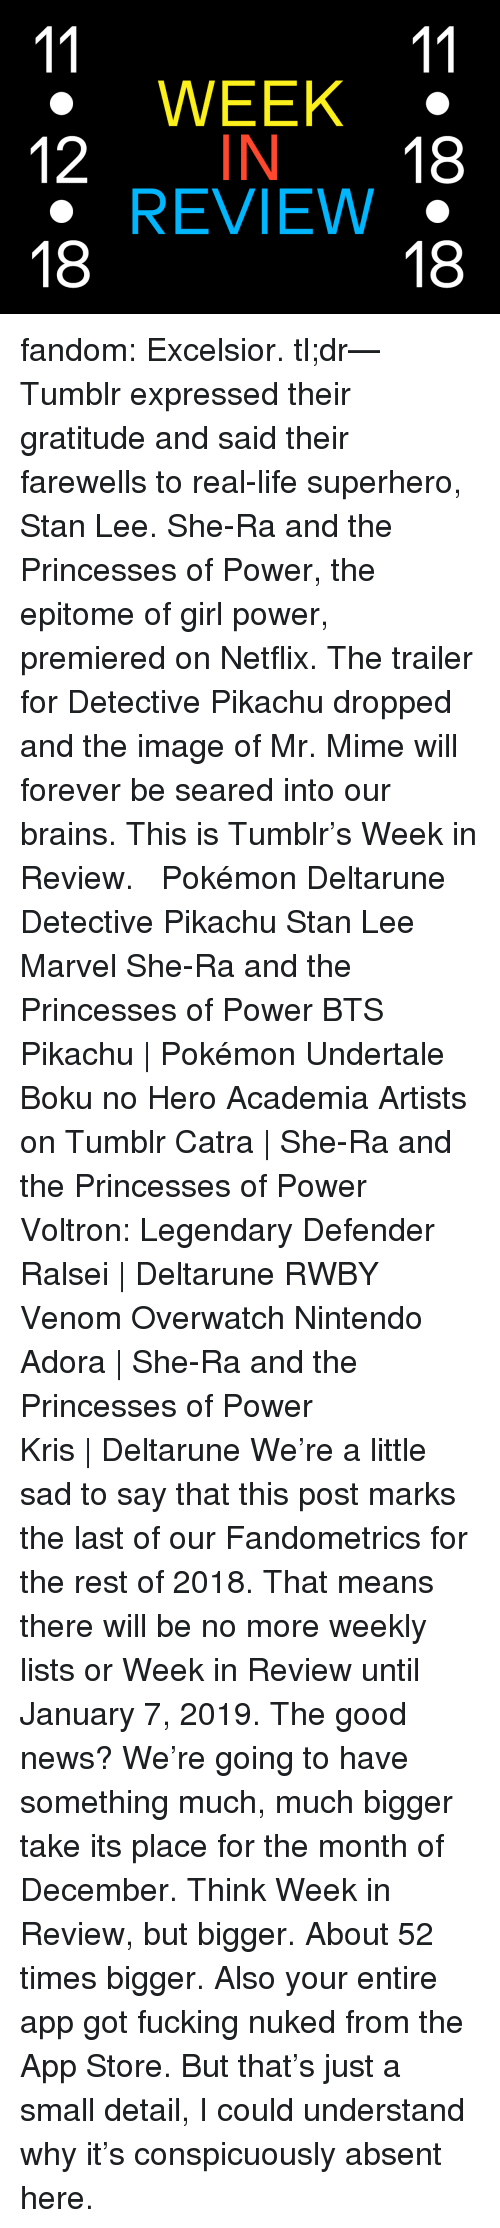 Tl Dr: WEEK  12 IN 18  REVIEW .  18  18 fandom: Excelsior. tl;dr—Tumblr expressed their gratitude and said their farewells to real-life superhero, Stan Lee. She-Ra and the Princesses of Power, the epitome of girl power, premiered on Netflix. The trailer for Detective Pikachu dropped and the image of Mr. Mime will forever be seared into our brains. This is Tumblr's Week in Review.   Pokémon  Deltarune  Detective Pikachu  Stan Lee  Marvel  She-Ra and the Princesses of Power  BTS   Pikachu | Pokémon   Undertale  Boku no Hero Academia  Artists on Tumblr   Catra | She-Ra and the Princesses of Power   Voltron: Legendary Defender   Ralsei | Deltarune   RWBY  Venom  Overwatch  Nintendo   Adora | She-Ra and the Princesses of Power    Kris | Deltarune  We're a little sad to say that this post marks the last of our Fandometrics for the rest of 2018. That means there will be no more weekly lists or Week in Review until January 7, 2019. The good news? We're going to have something much, much bigger take its place for the month of December. Think Week in Review, but bigger. About 52 times bigger.   Also your entire app got fucking nuked from the App Store. But that's just a small detail, I could understand why it's conspicuously absent here.